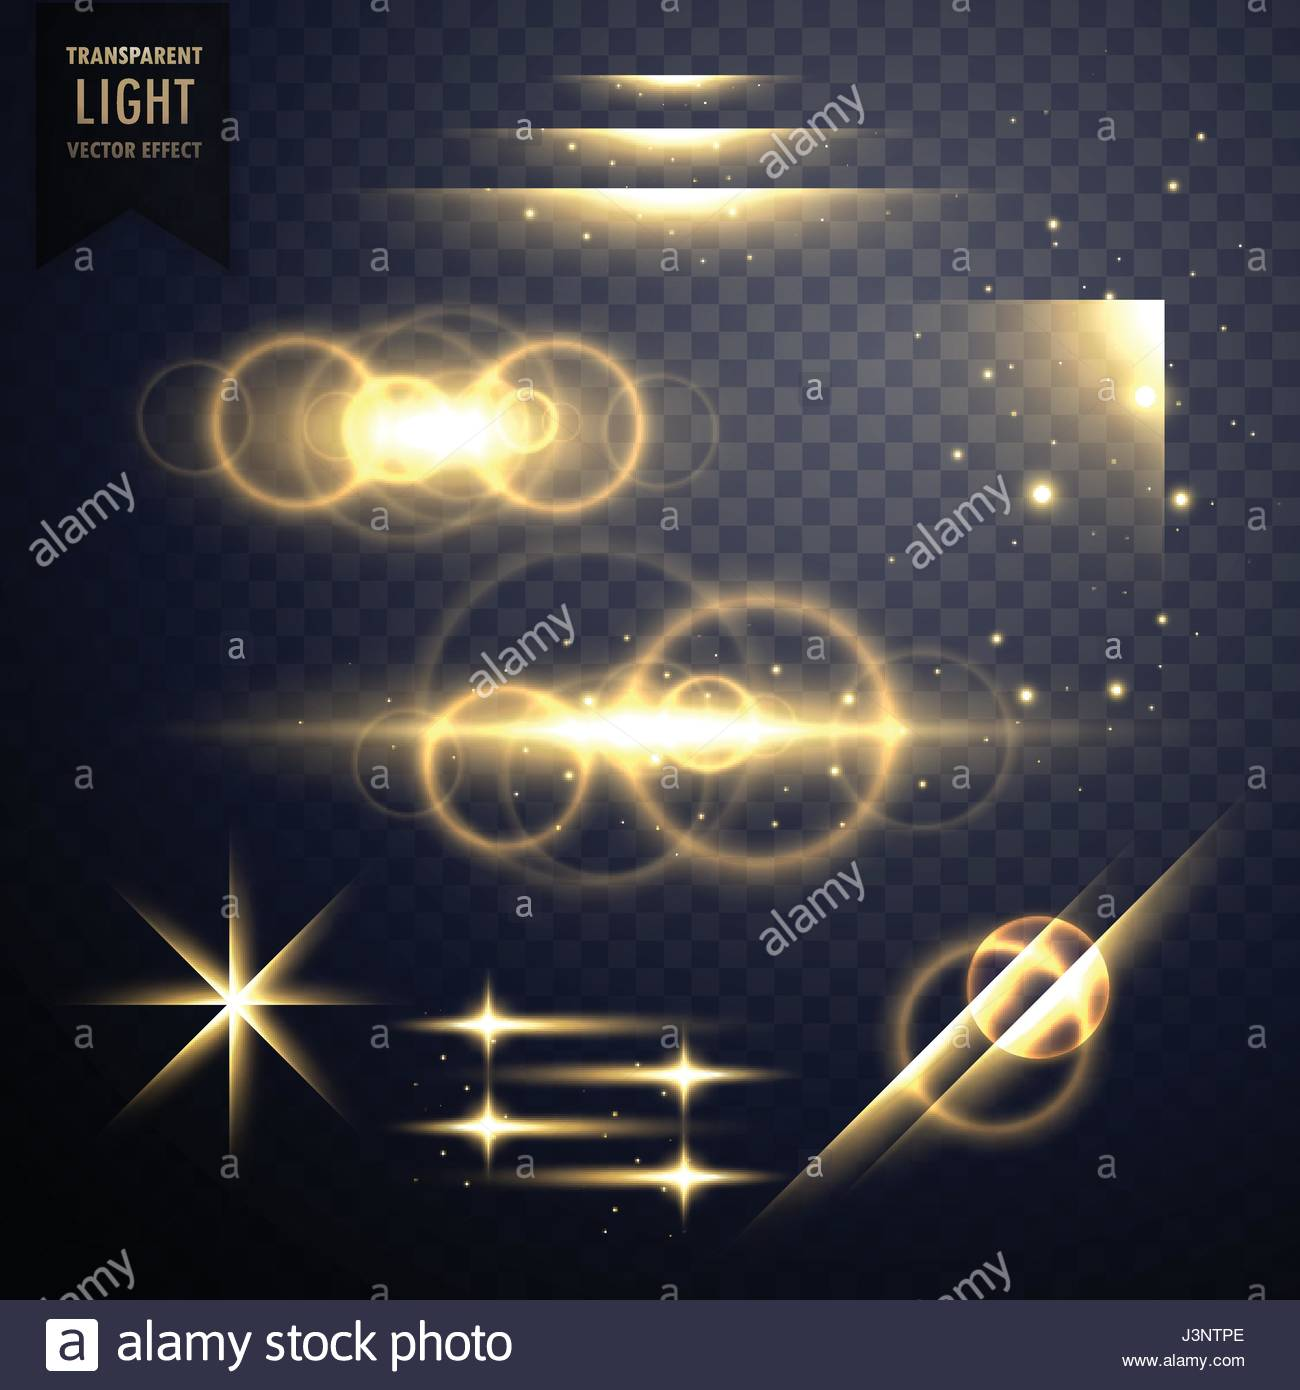 transparent light effect and lens flare collection Stock Vector